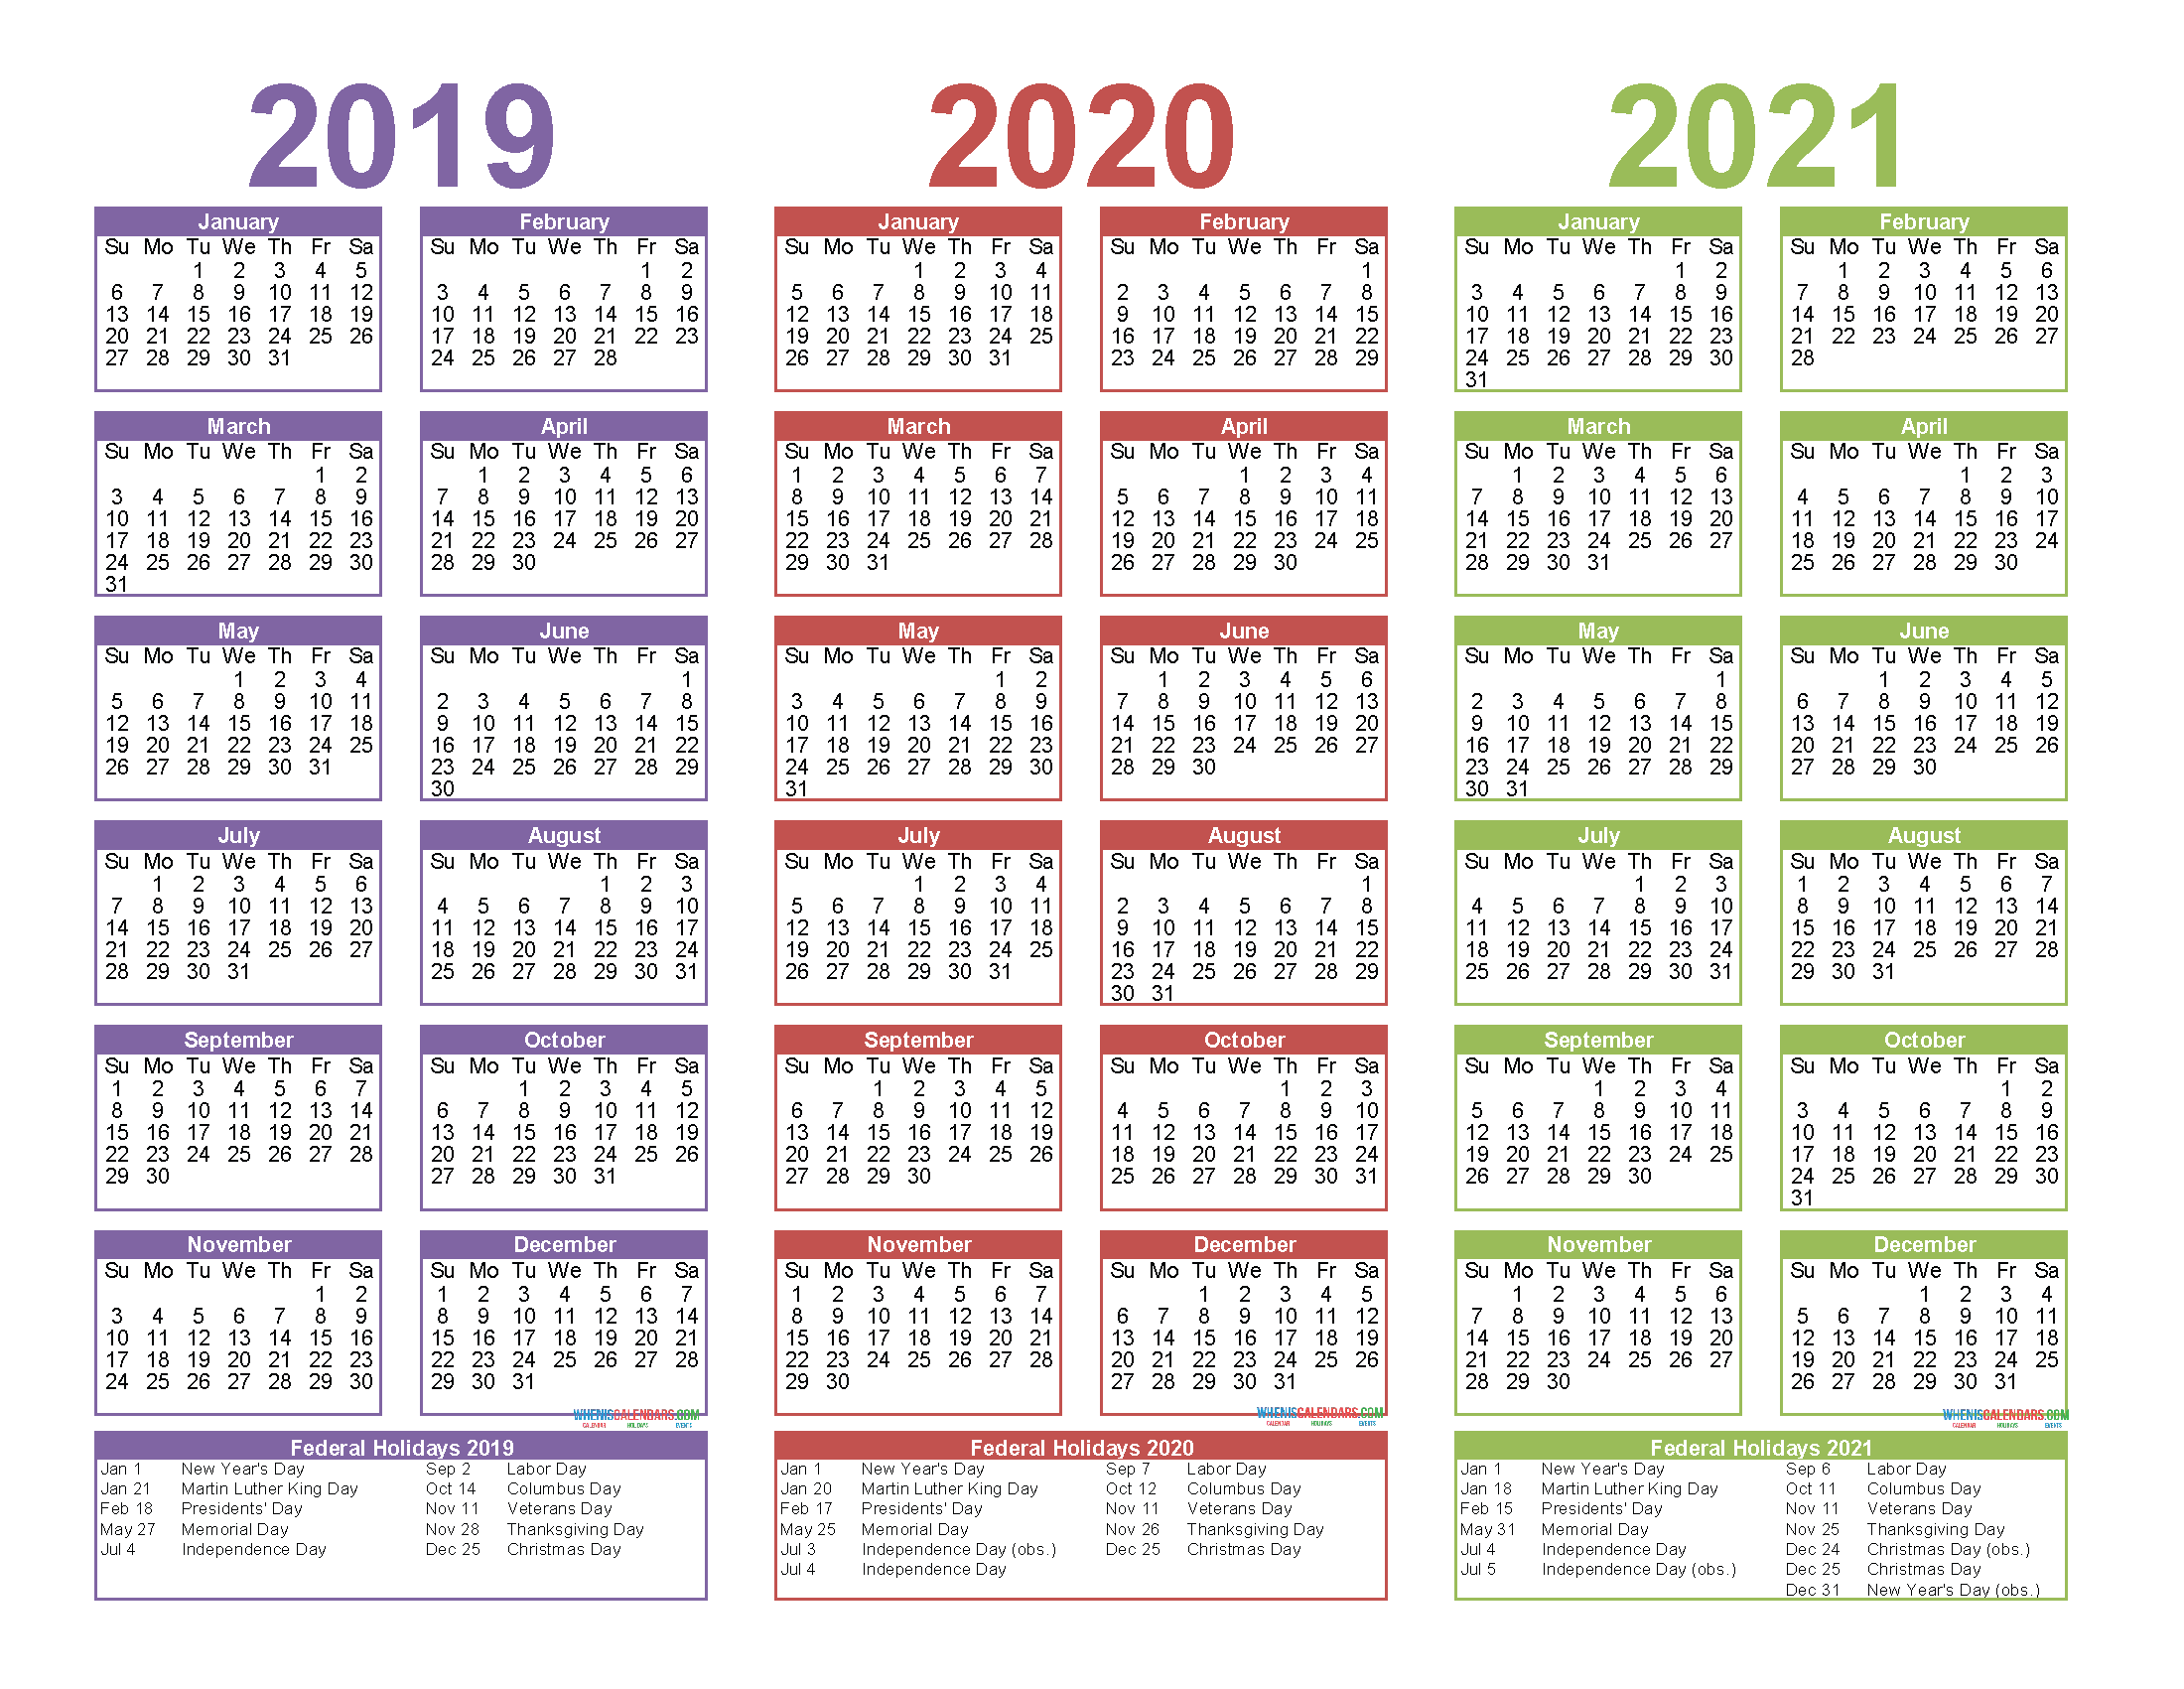 Free Printable 2019 2020 and 2021 Calendar with Holidays